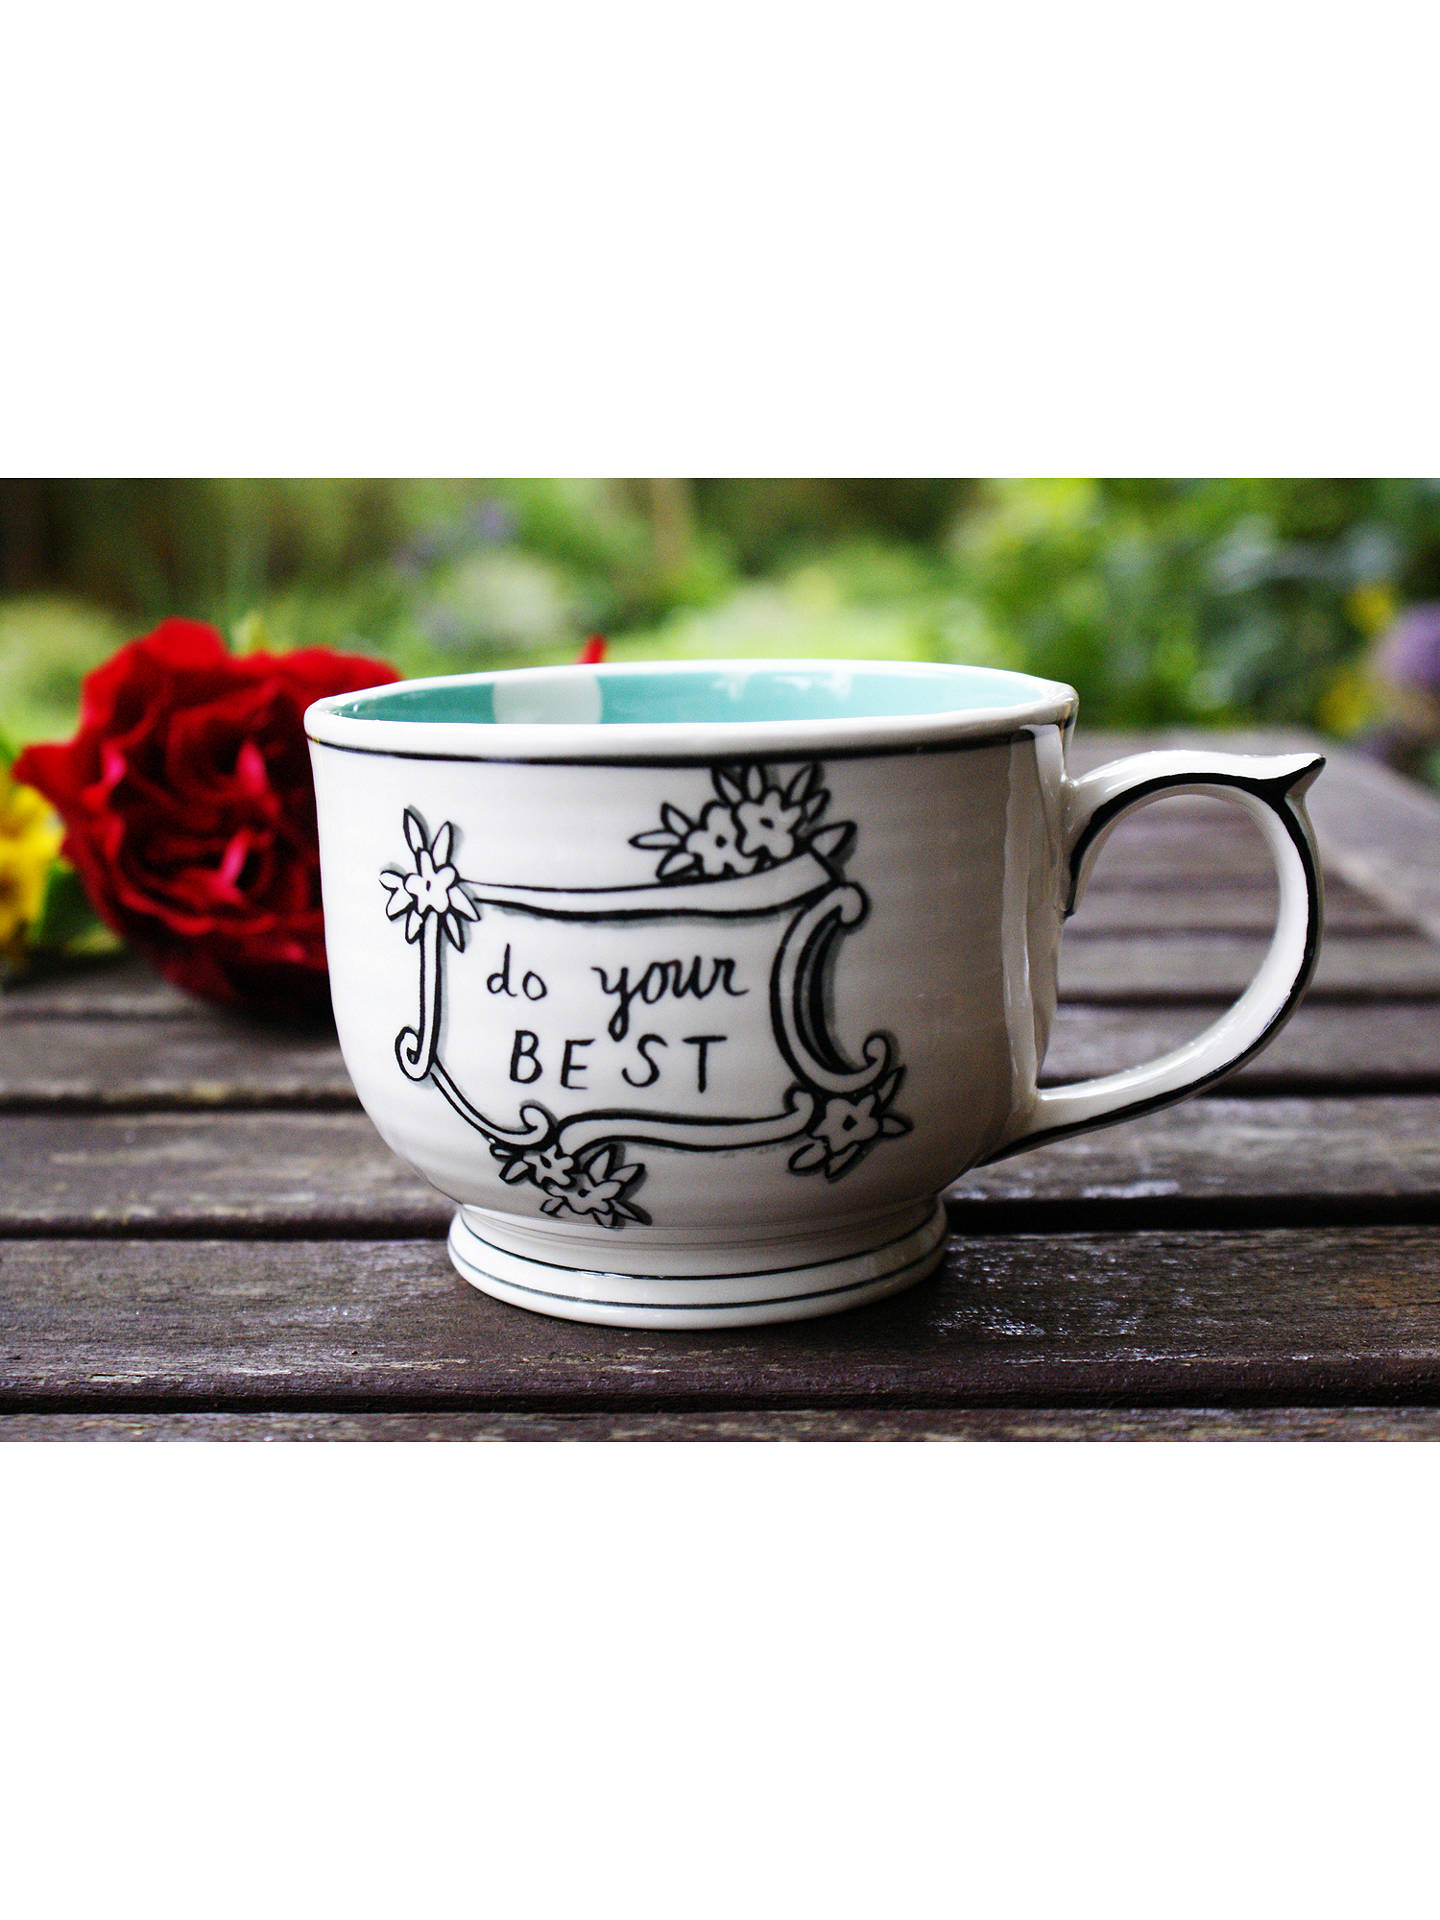 Buy Molly Hatch 'Do Your Best' Mug, Multi, 397ml Online at johnlewis.com